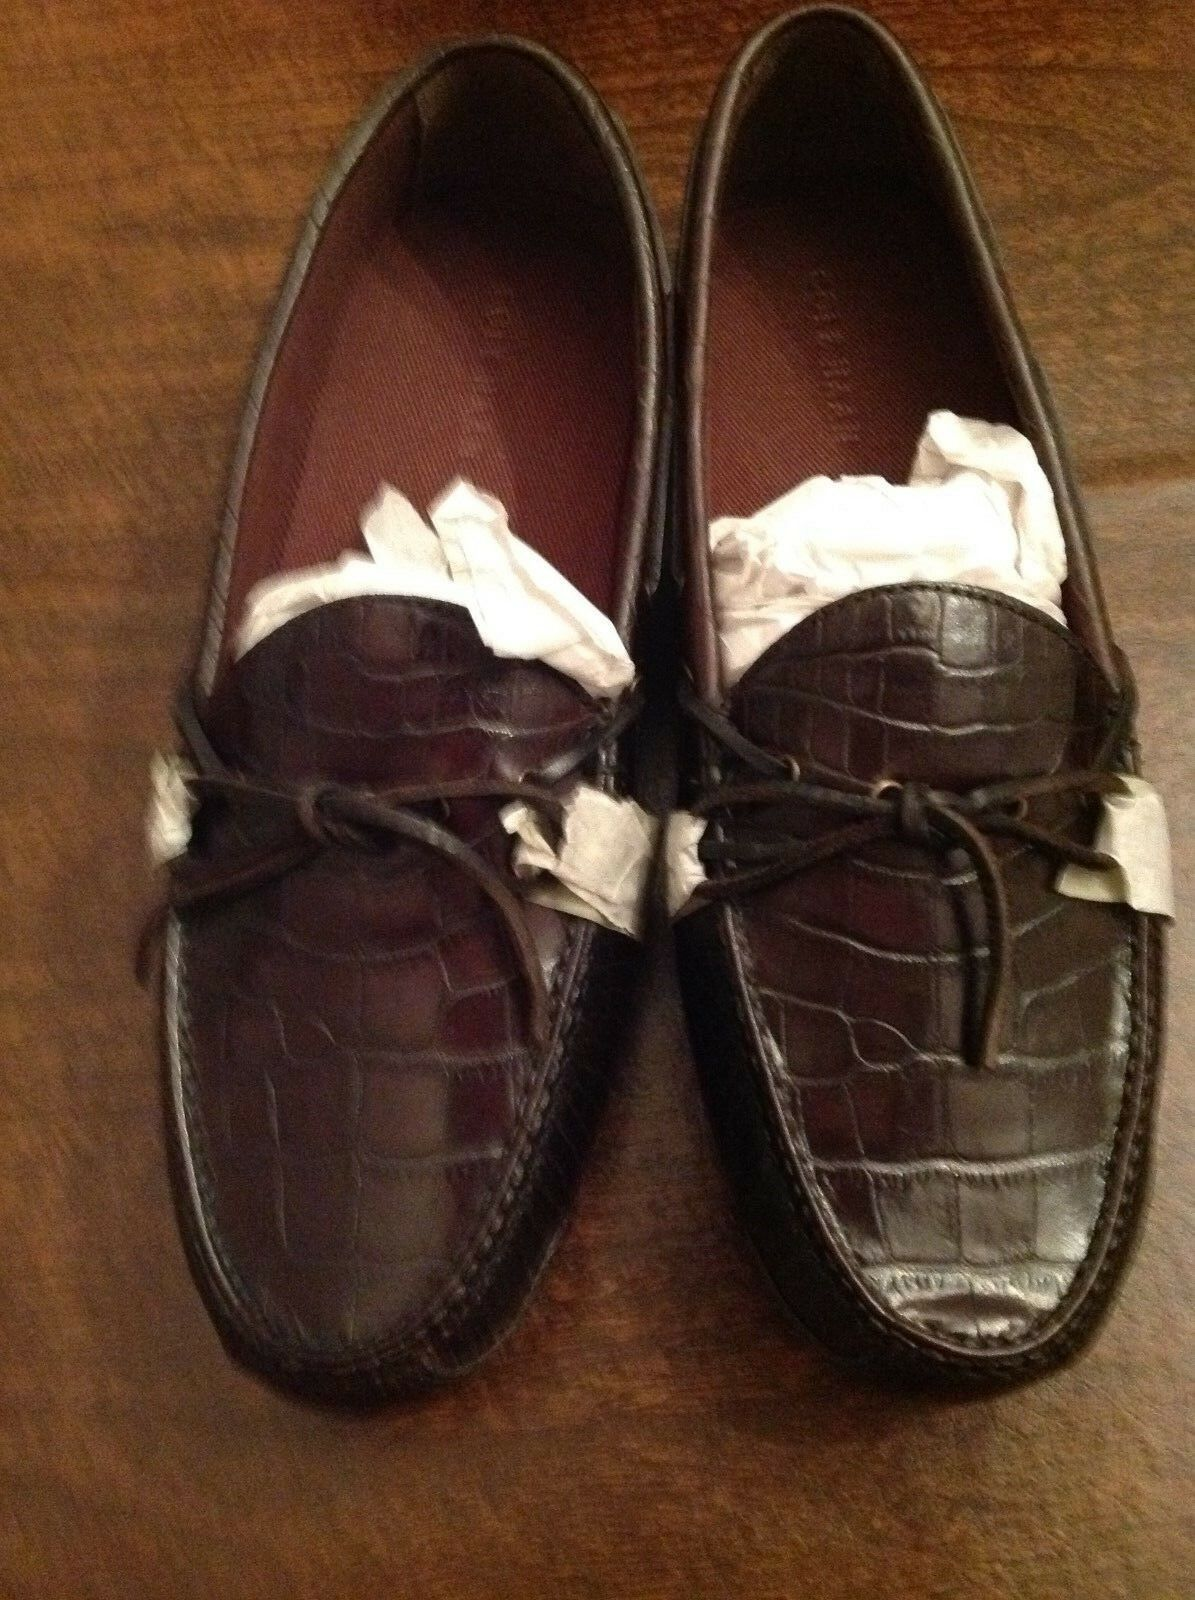 Cole Haan Men's Gunnison II Brown Leather Drivers(Loafers)  Size: 11.5M   NIB